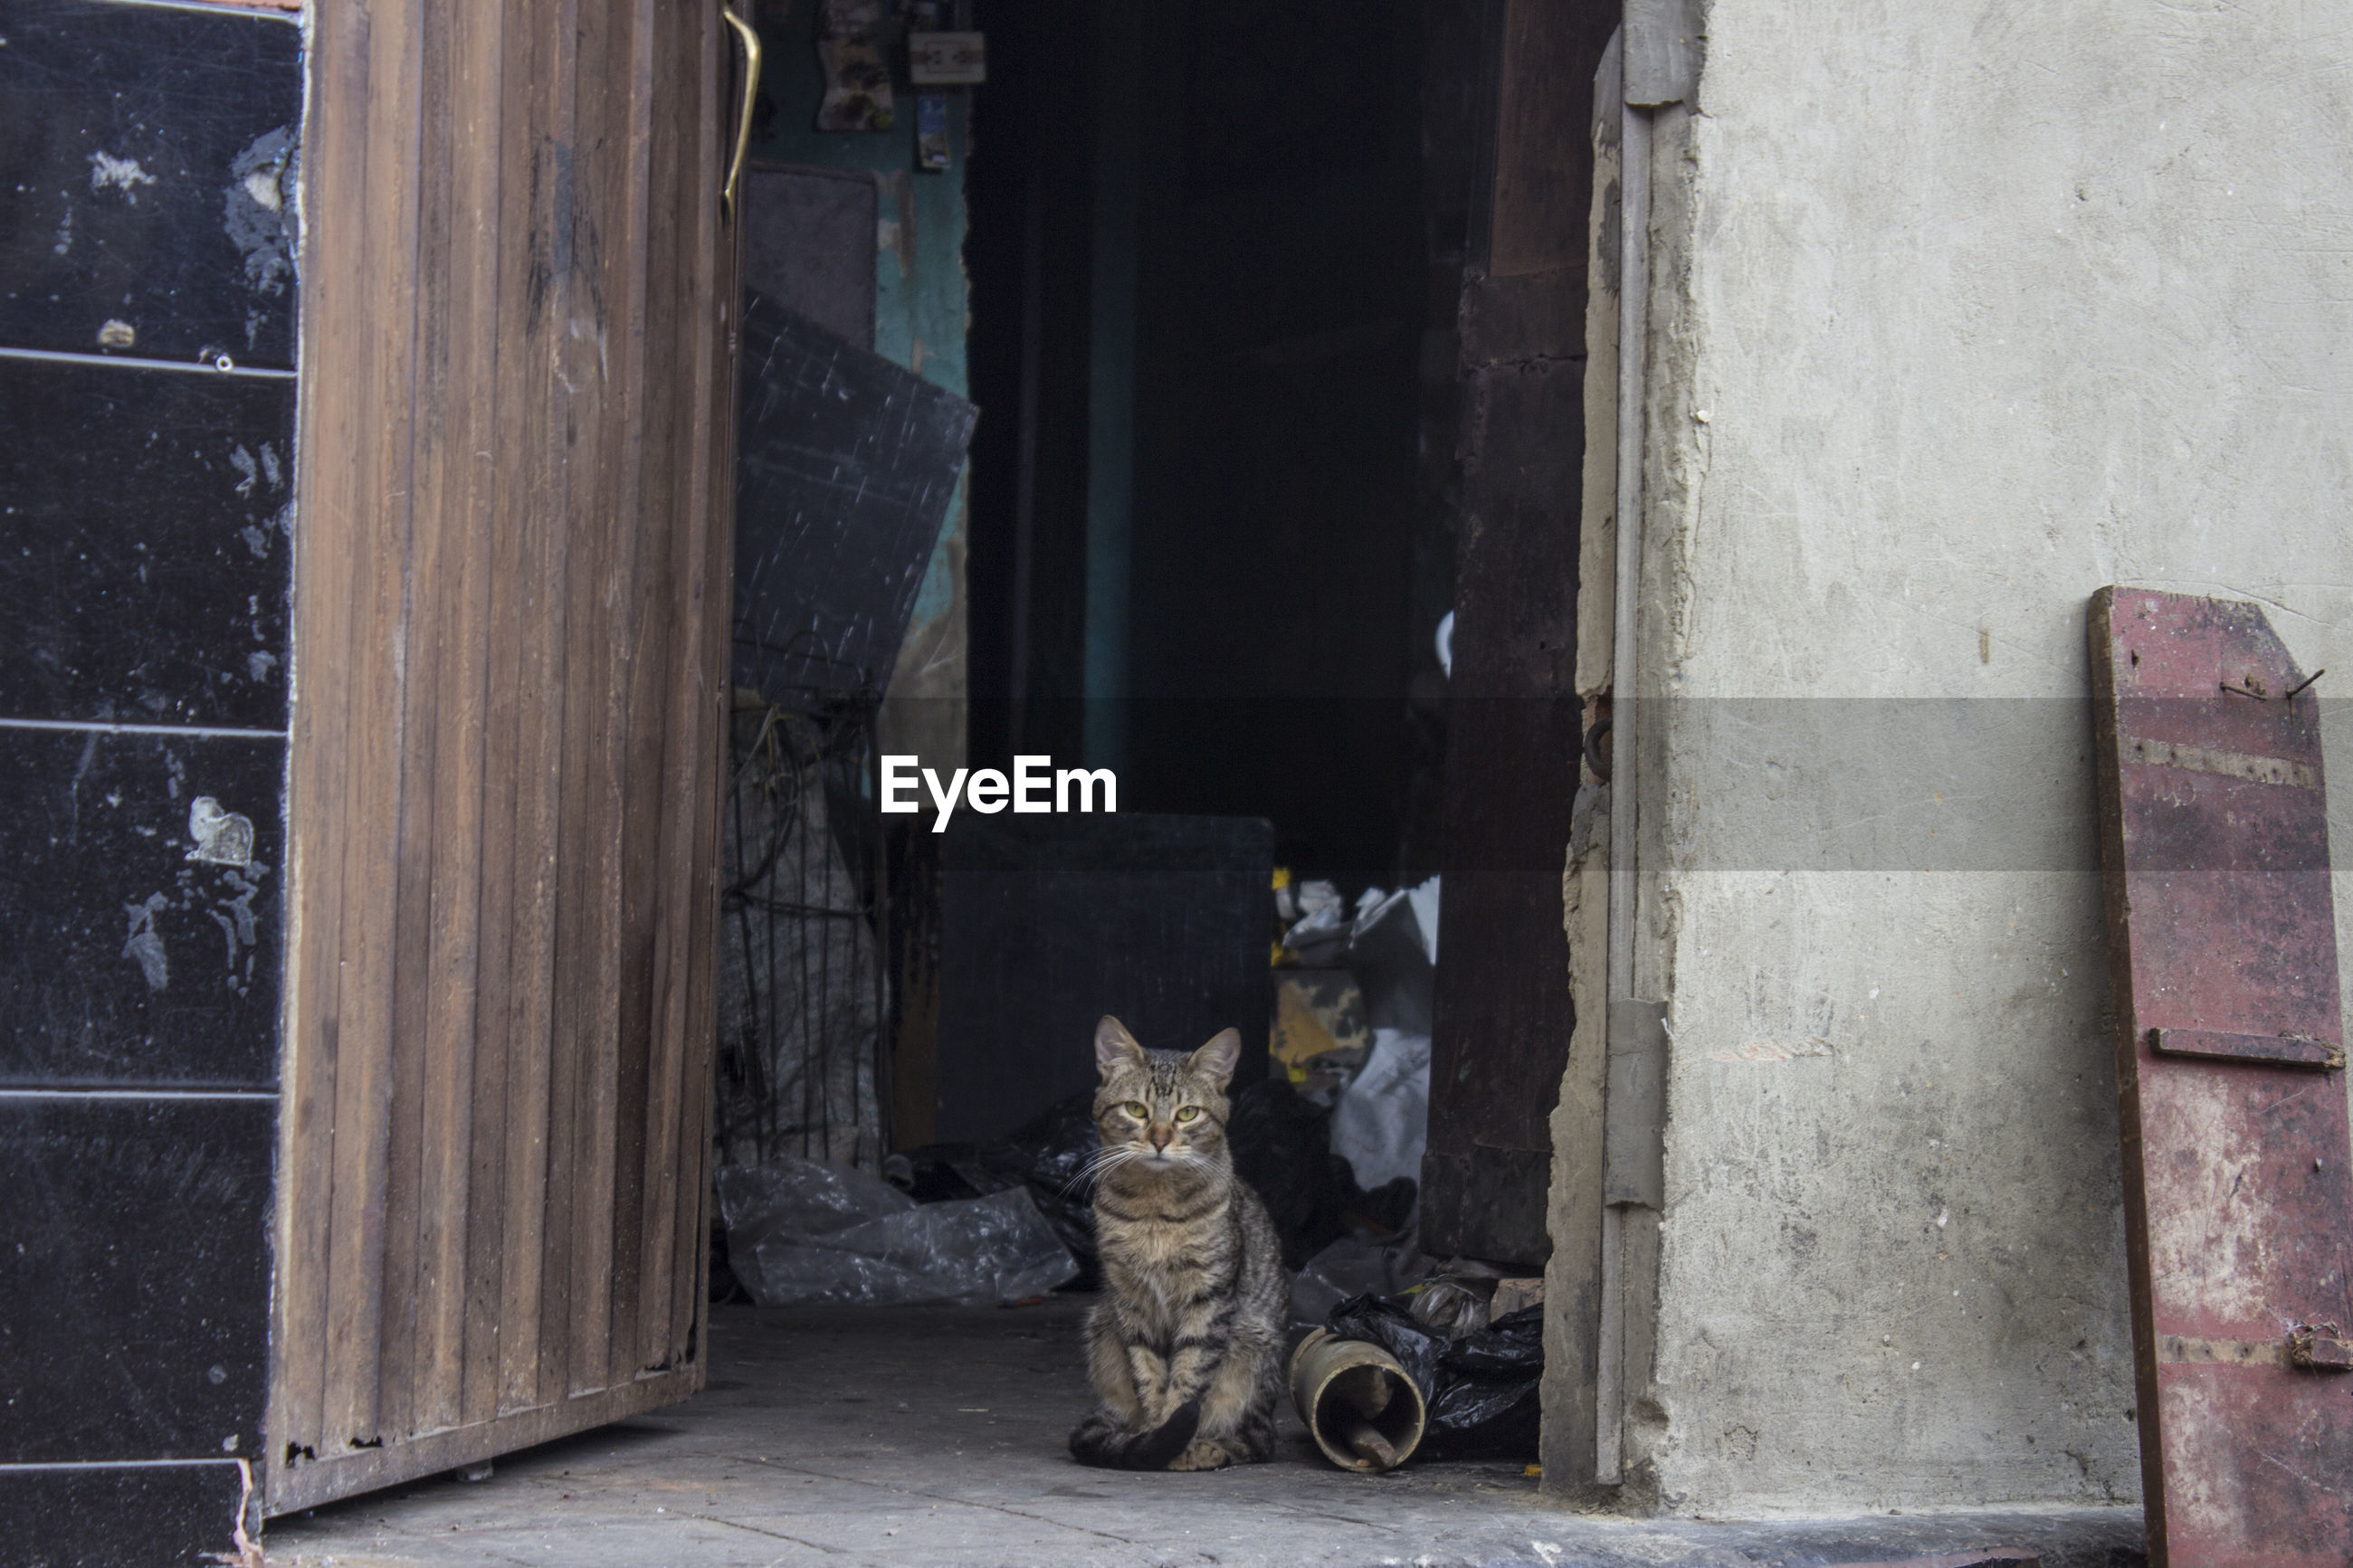 Stray cat sitting in doorway of abandoned building